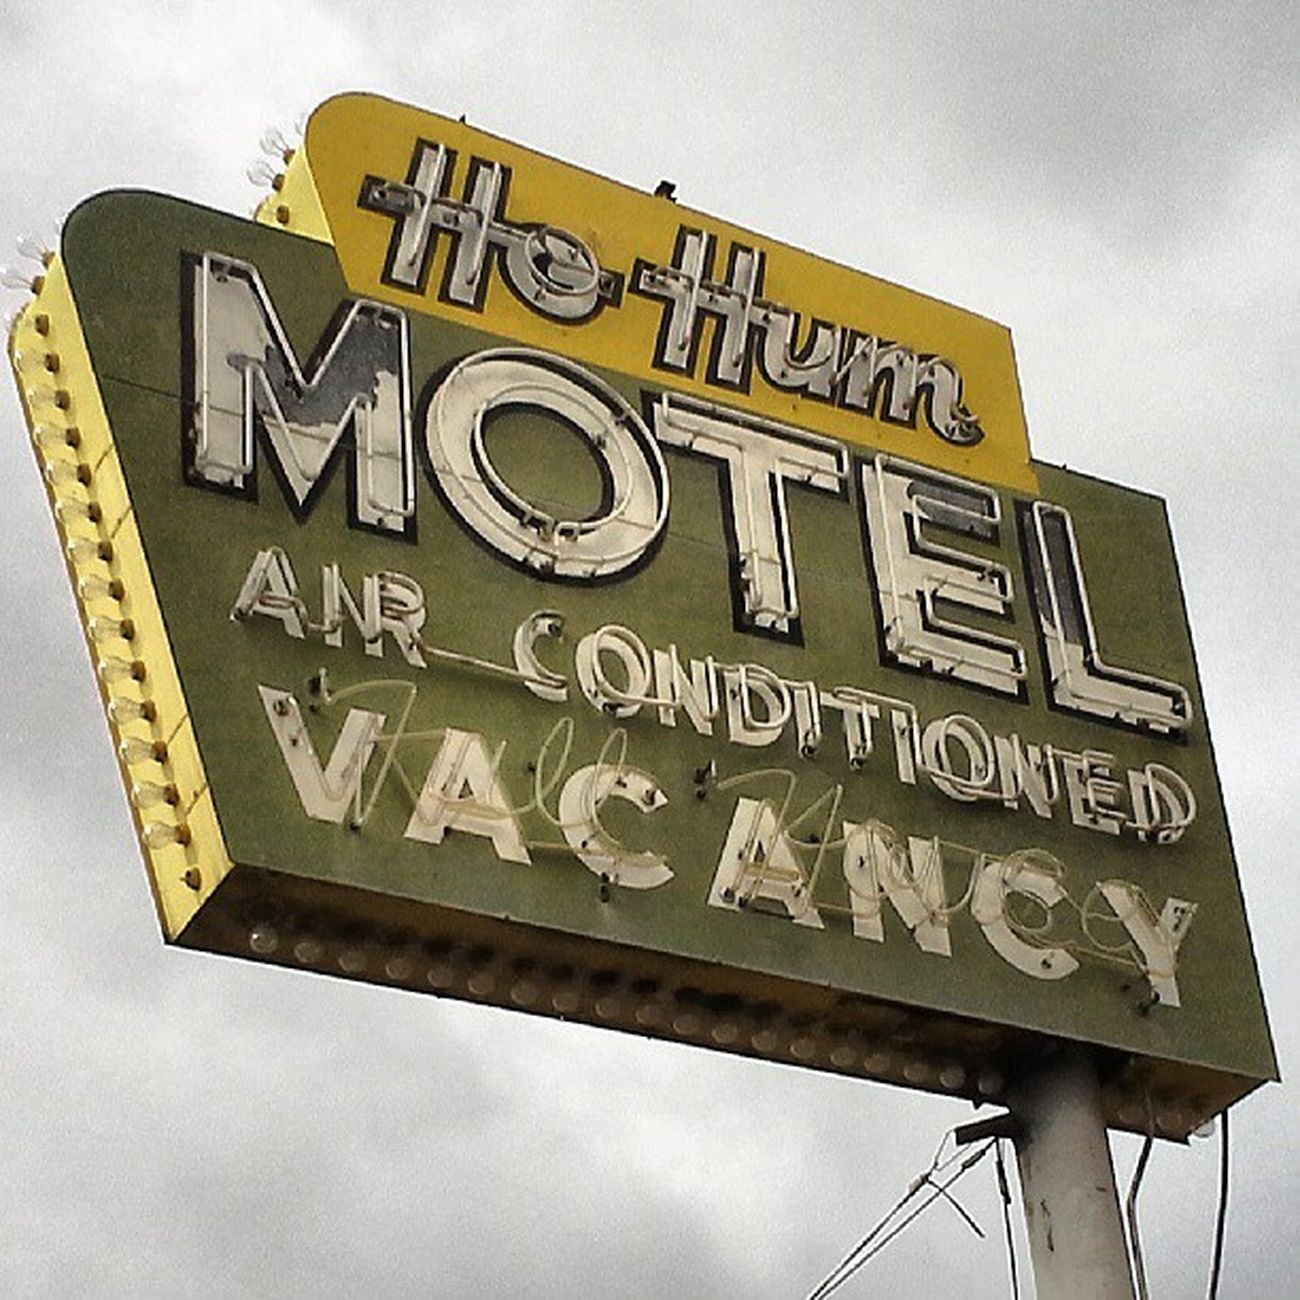 Downtown Signs Sweet Signage Roadtrip Typography Vacation Vacancy Neon Advertisement Sign Motel Nevada Nofilter Reno Loveit Lettering Signgeeks Oldsign Streetalma Signstalkers Savethesigns Lettergetter Neon_signs Neon_power Retrosign Airconditioned Oldreno Hohum